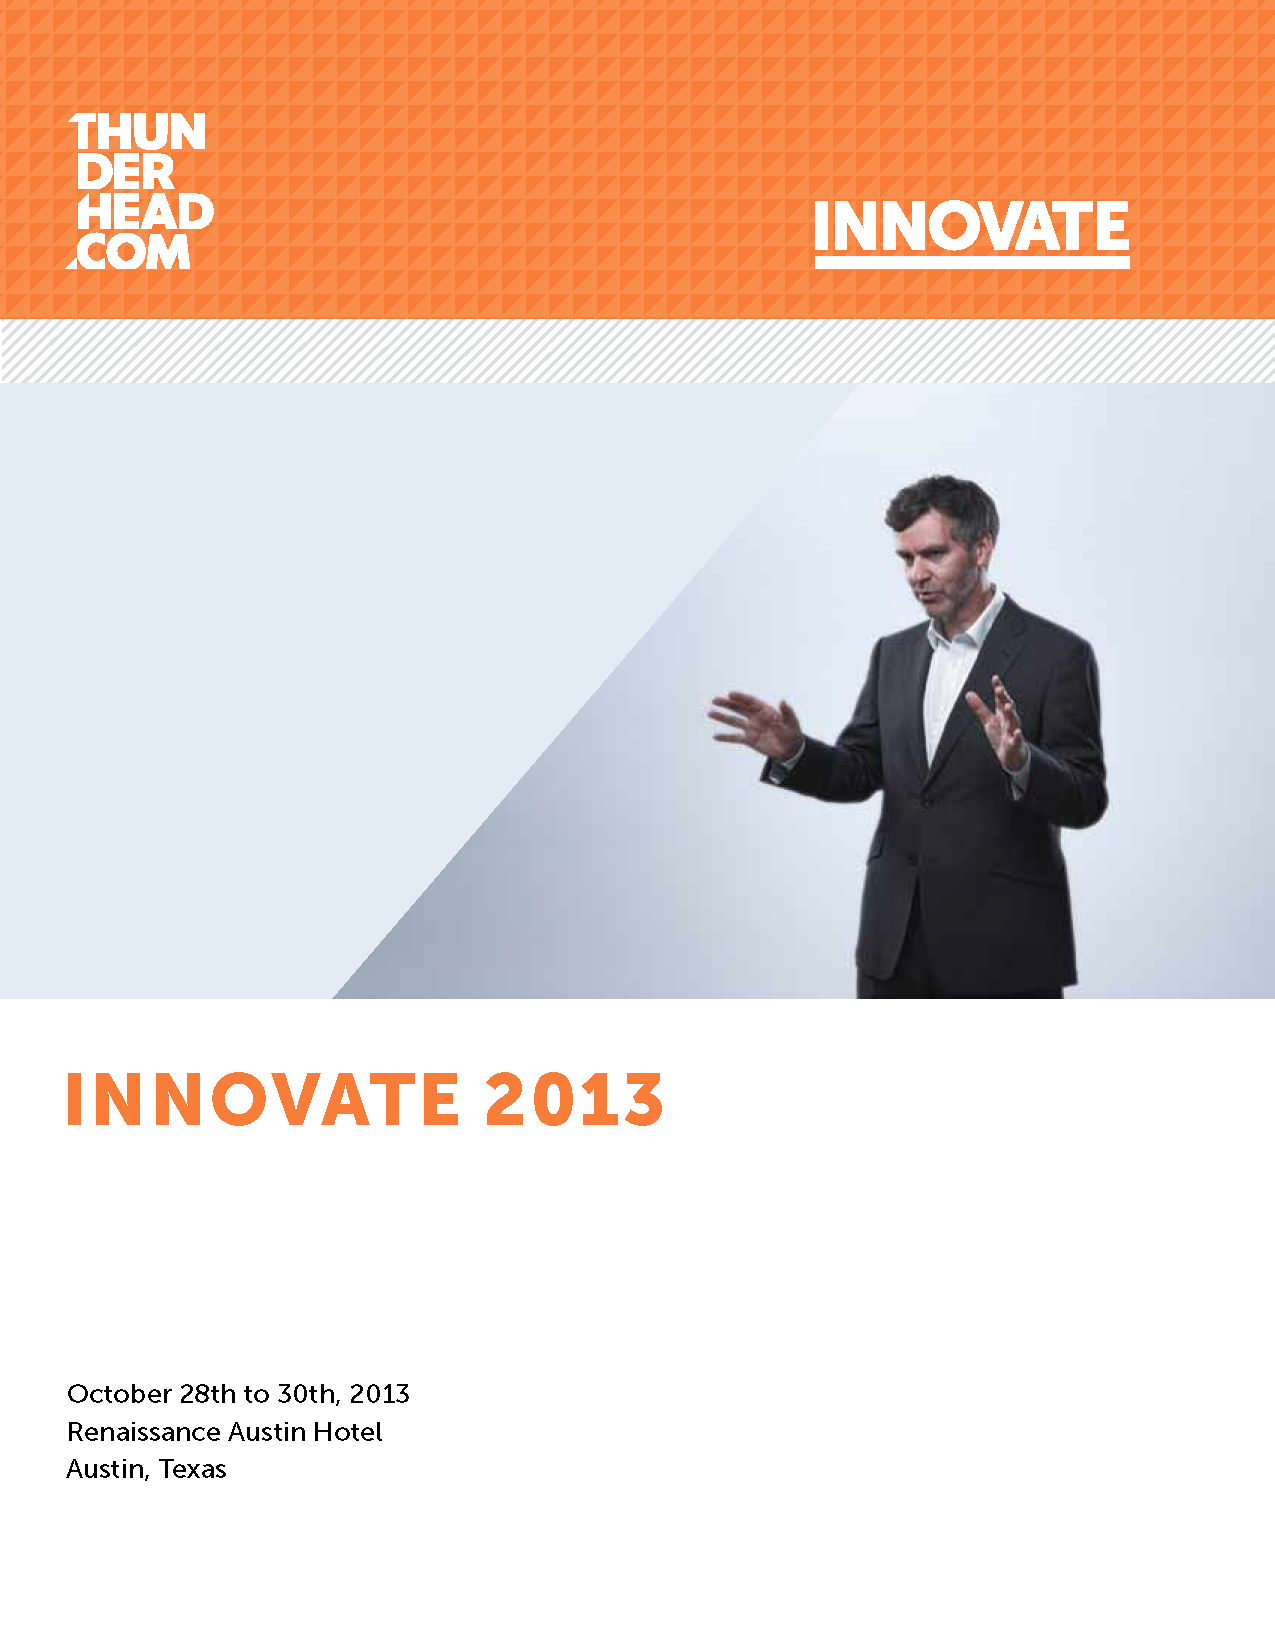 Thunderhead.com Innovate Conference Guide Cover